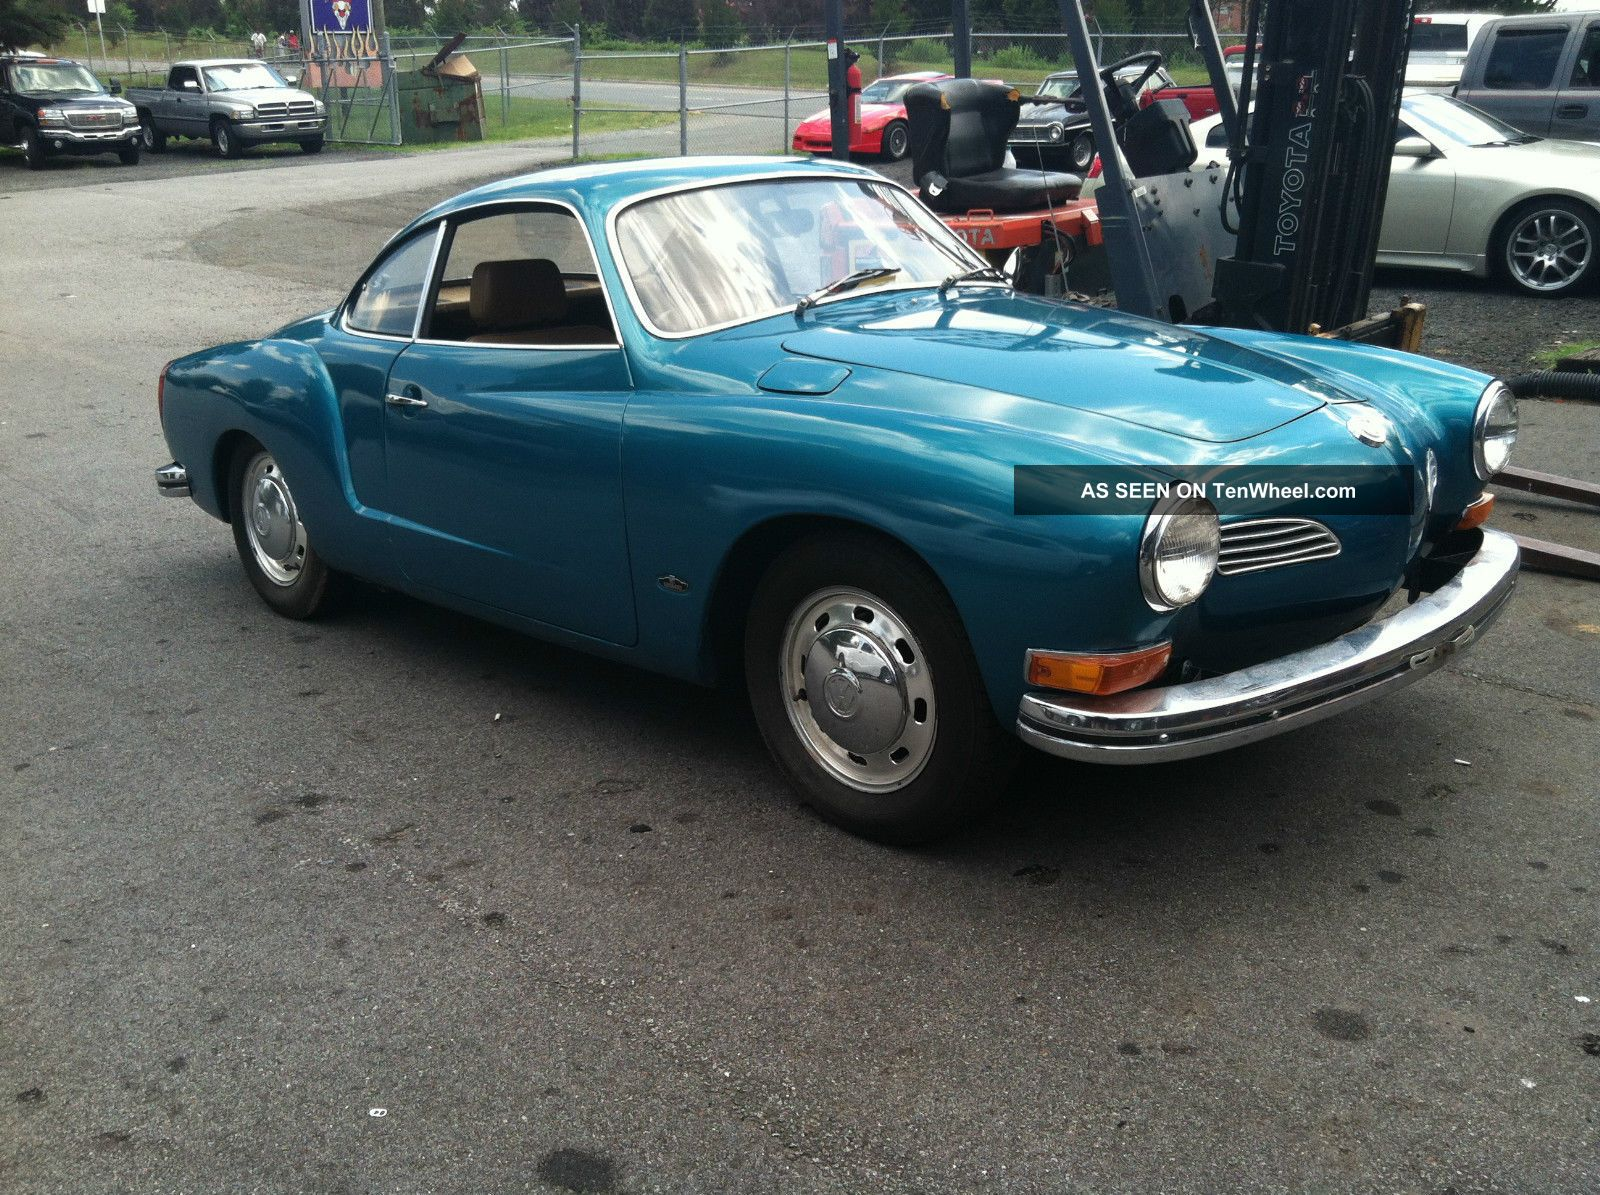 1972 Karmann Ghia Turquoise Tan Un - Molested Karmann Ghia photo